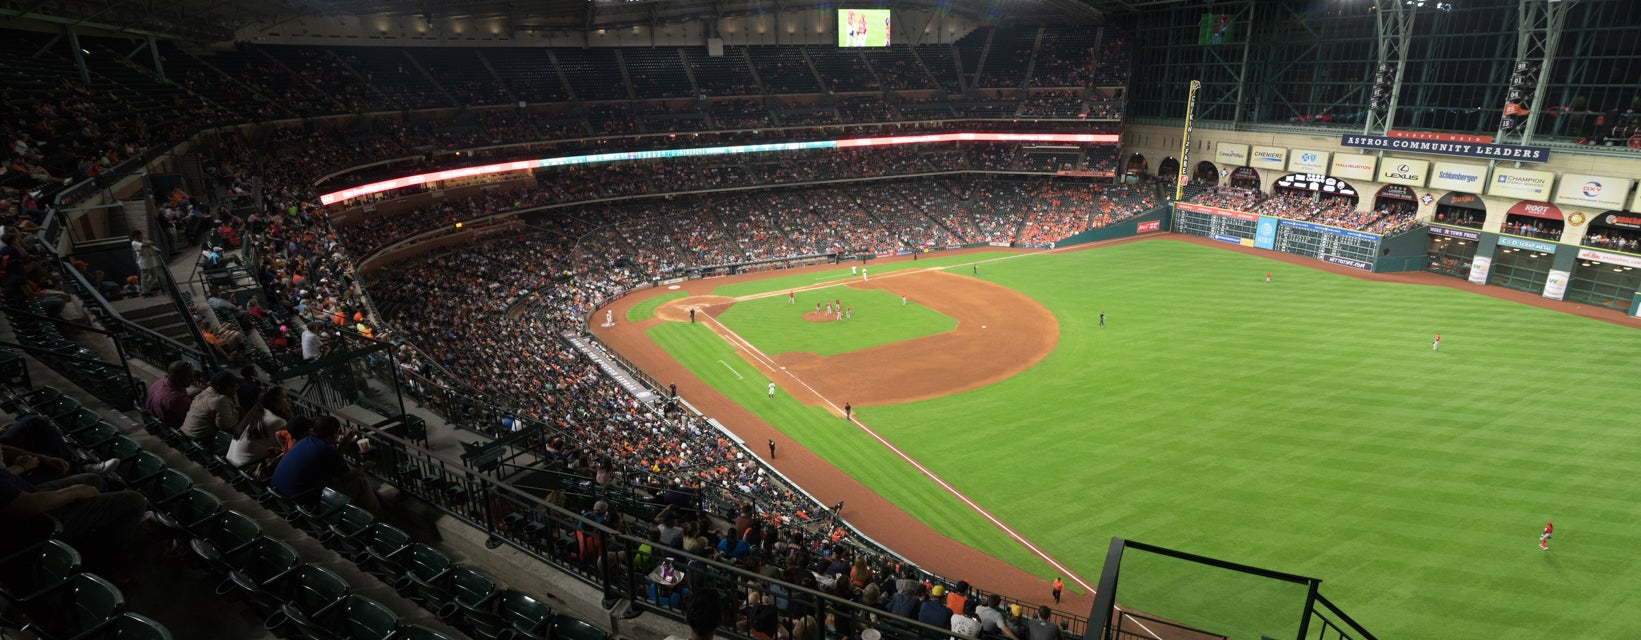 Seat view from Outfield Deck I